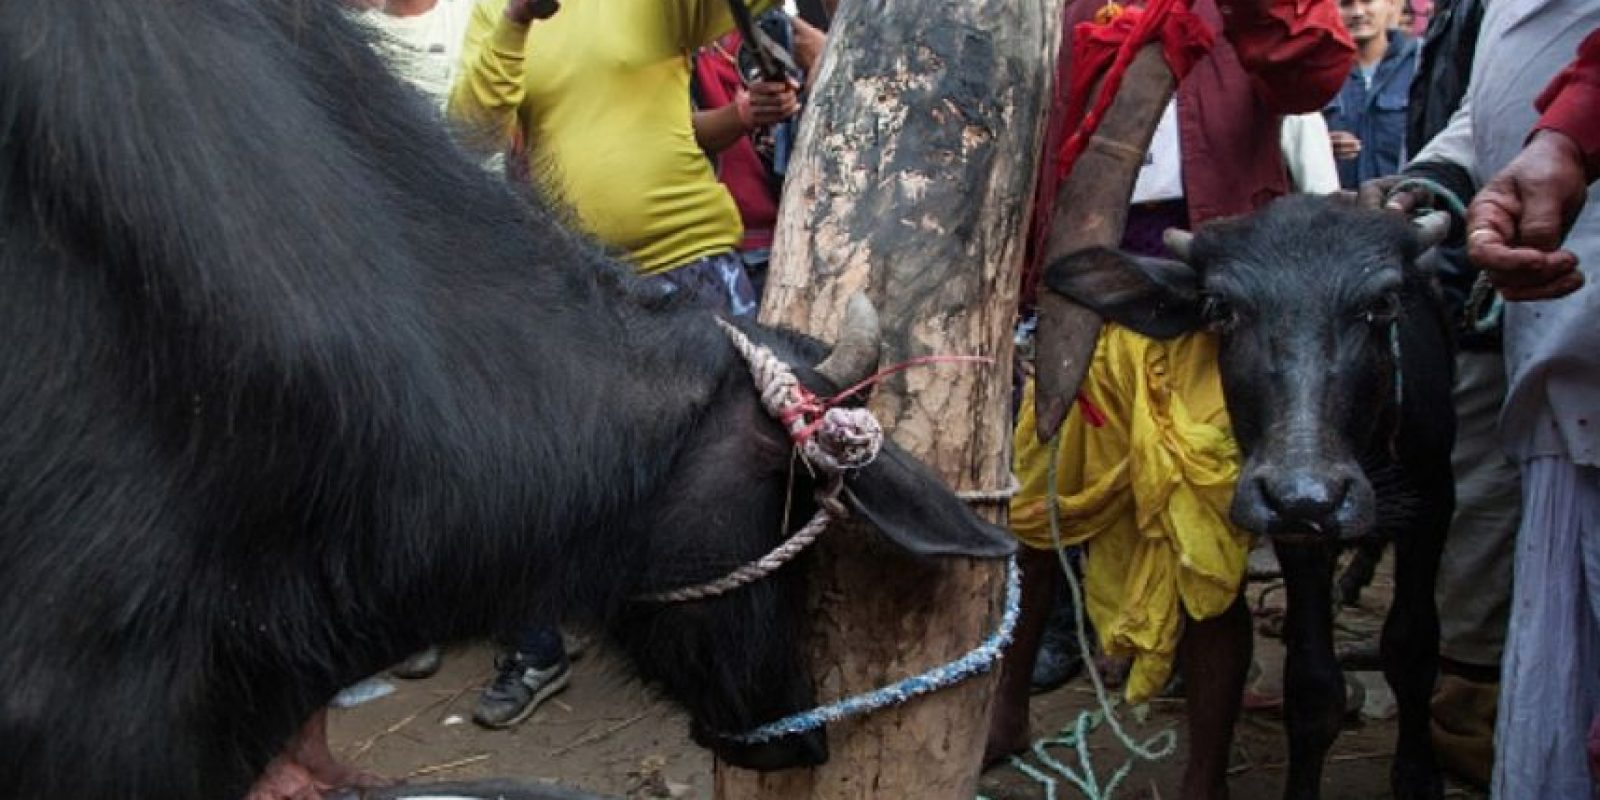 2. Festival Gadhimai Foto: Getty Images